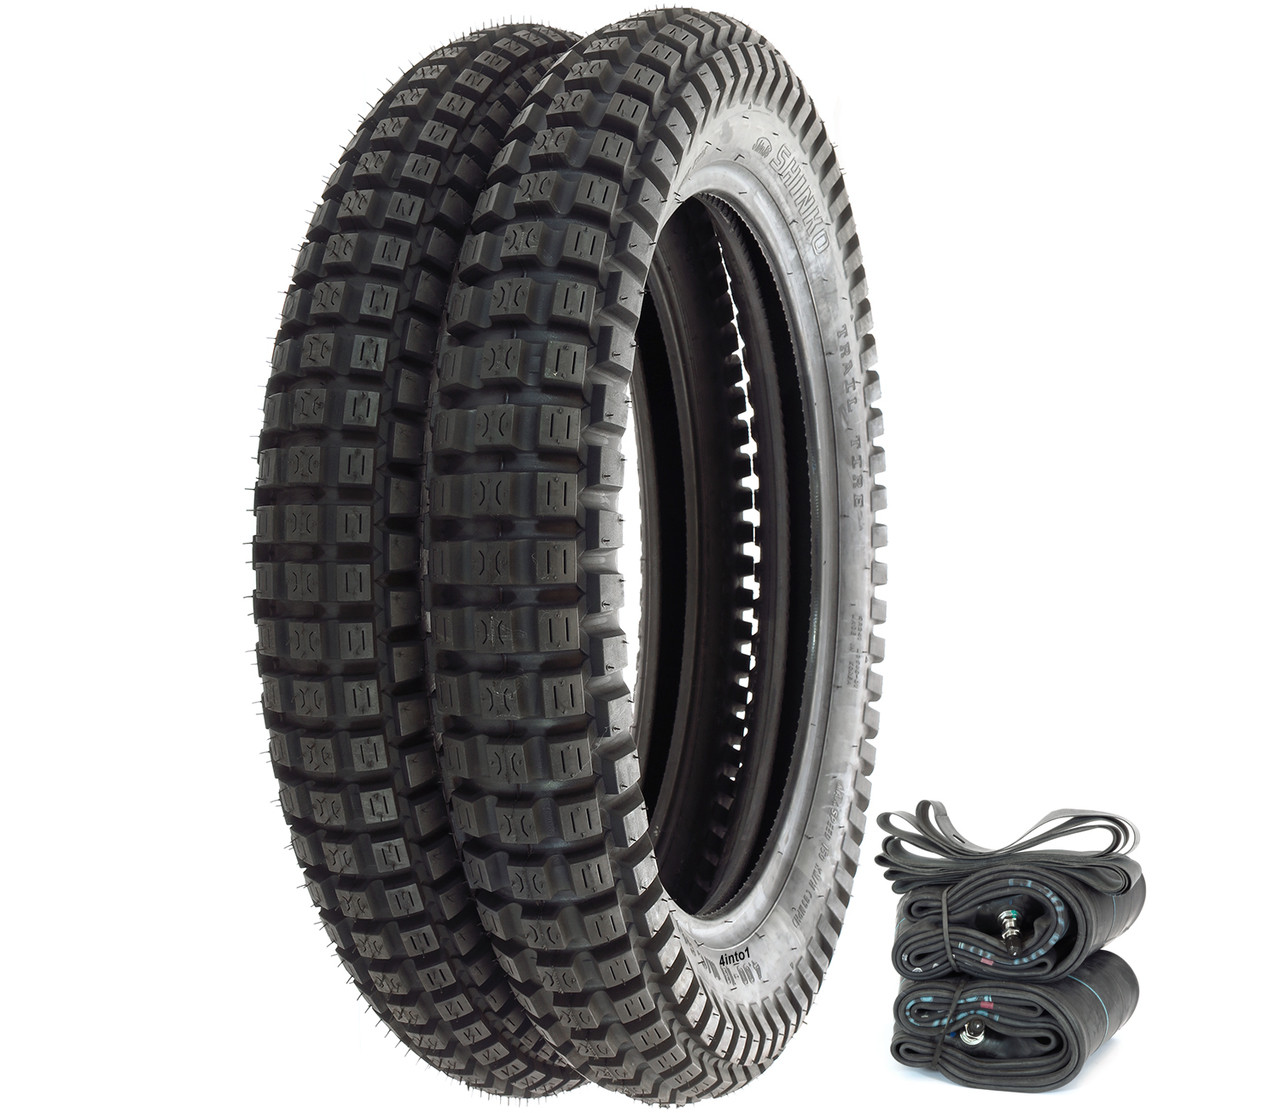 Shinko SR241 Trail Tire Set - Honda CR/MT/SL/XL125 MR/XL175